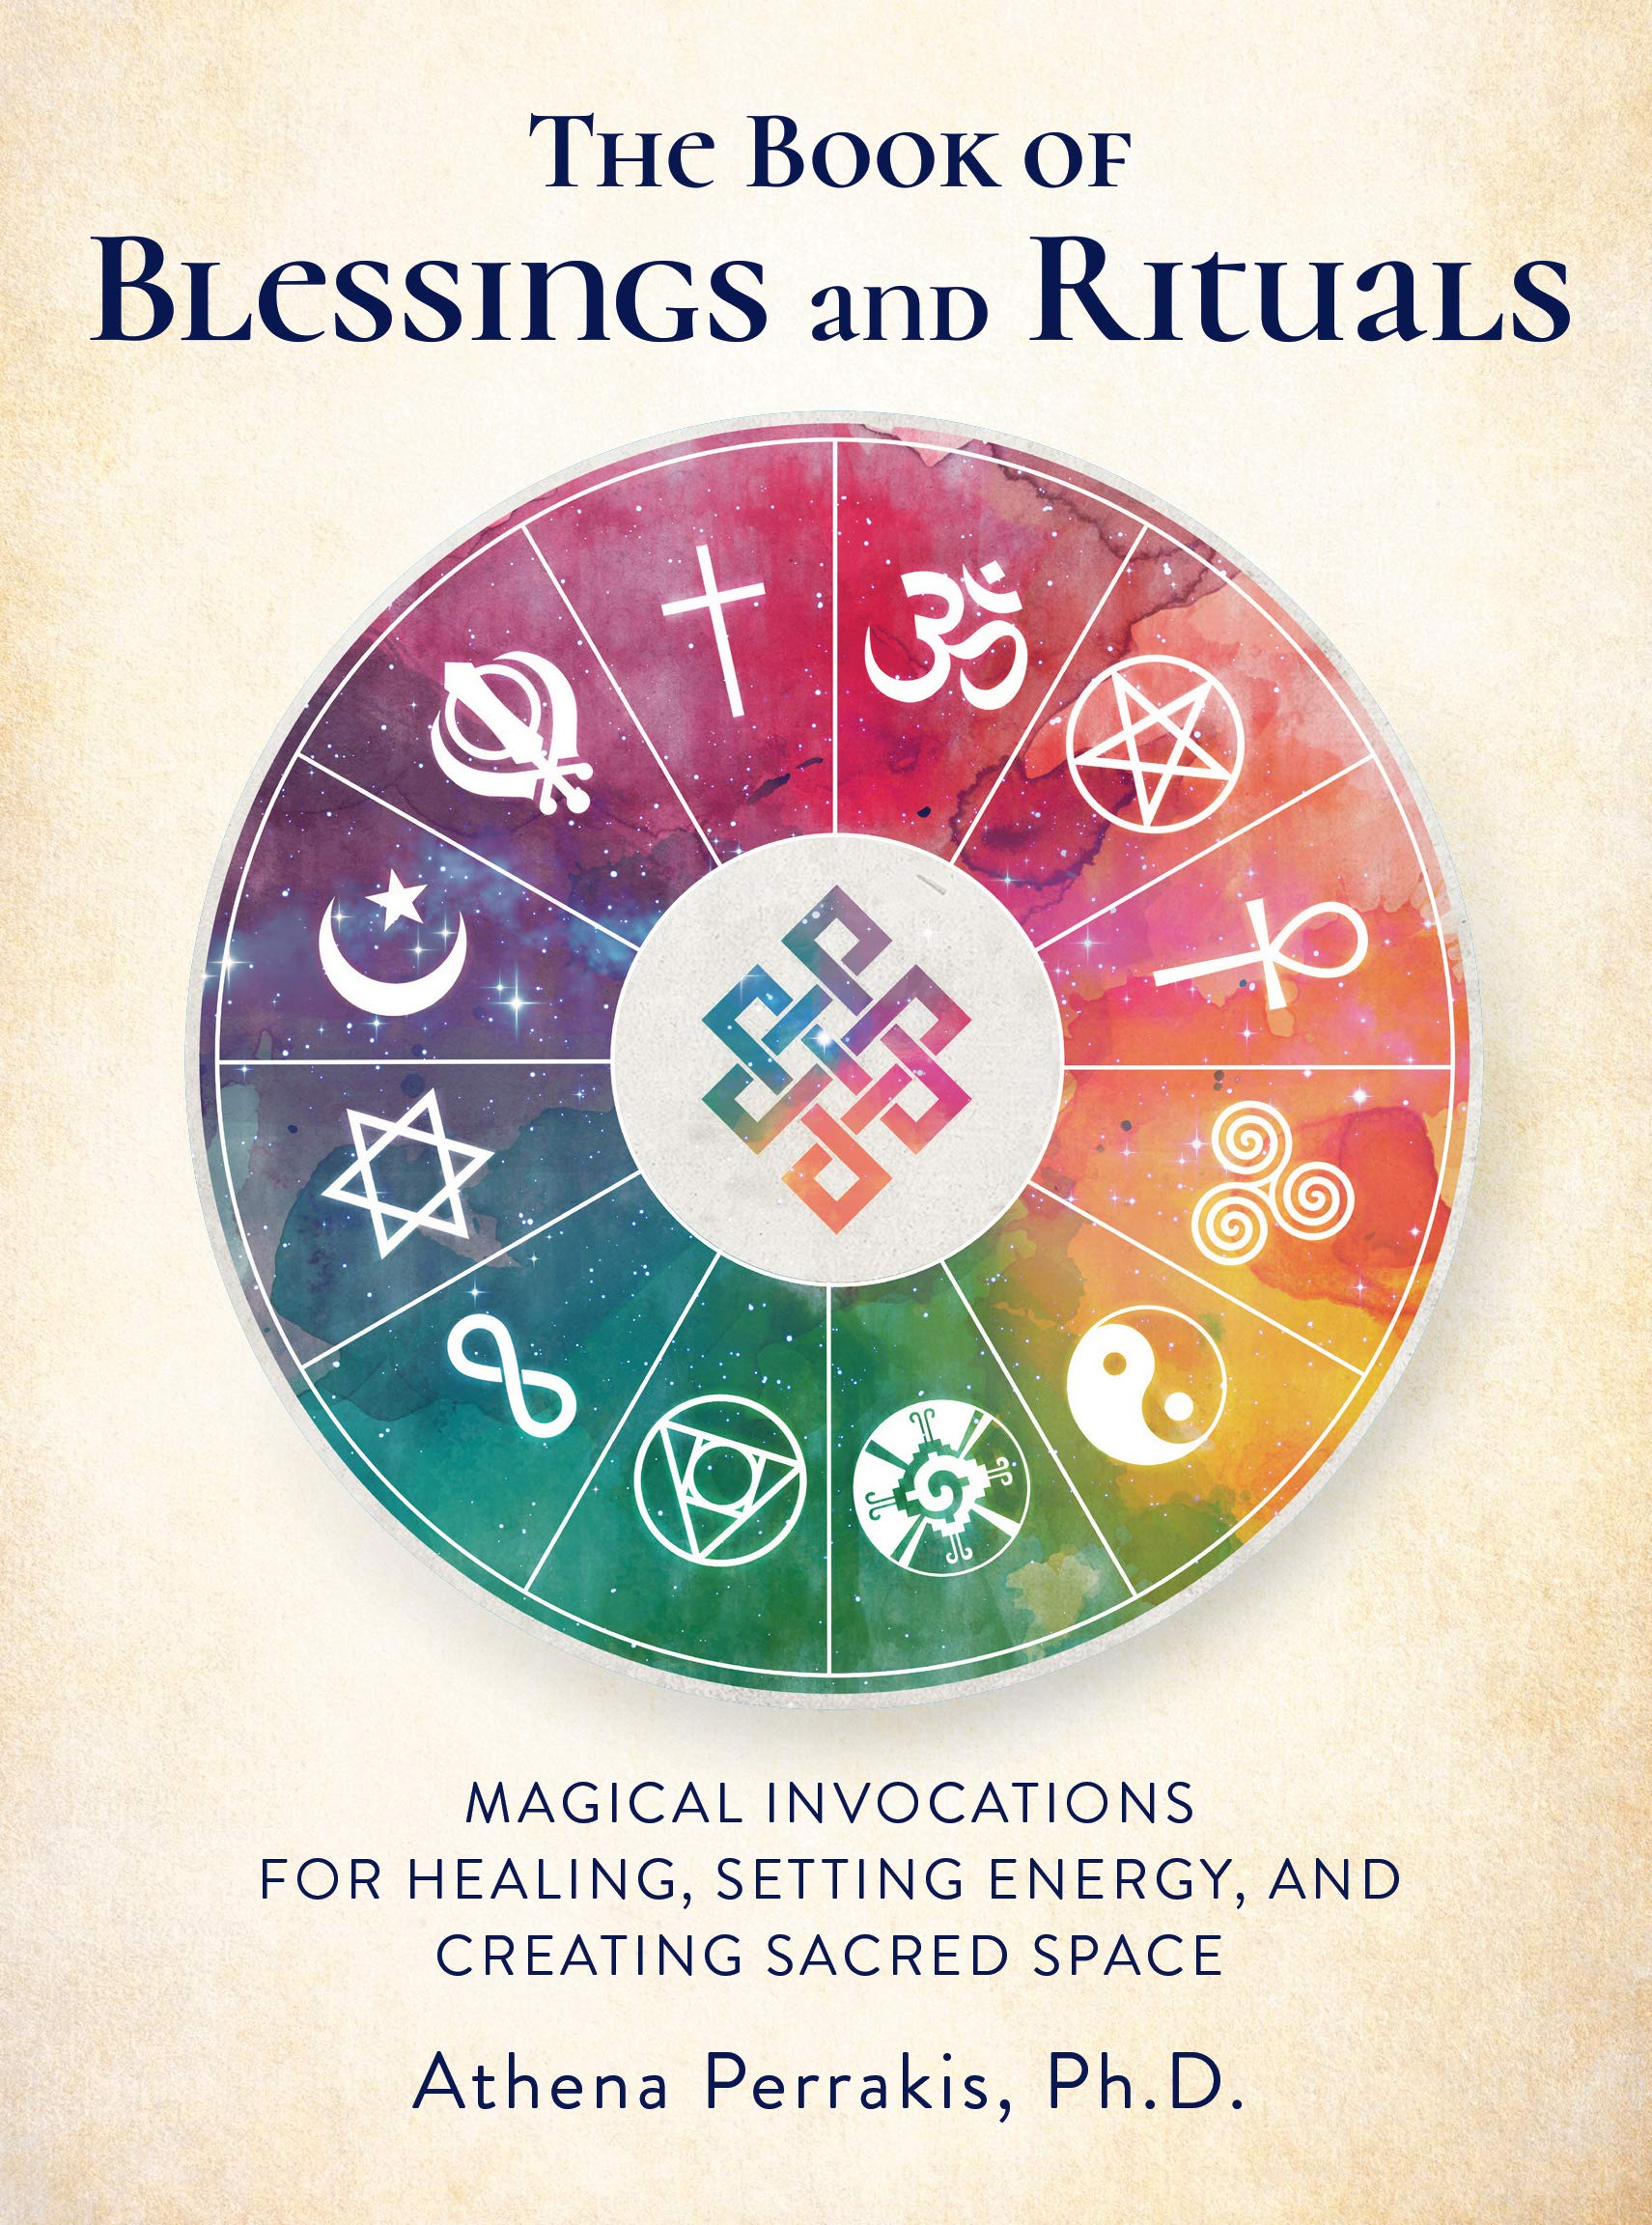 Amazon com: The Book of Blessings and Rituals: Magical